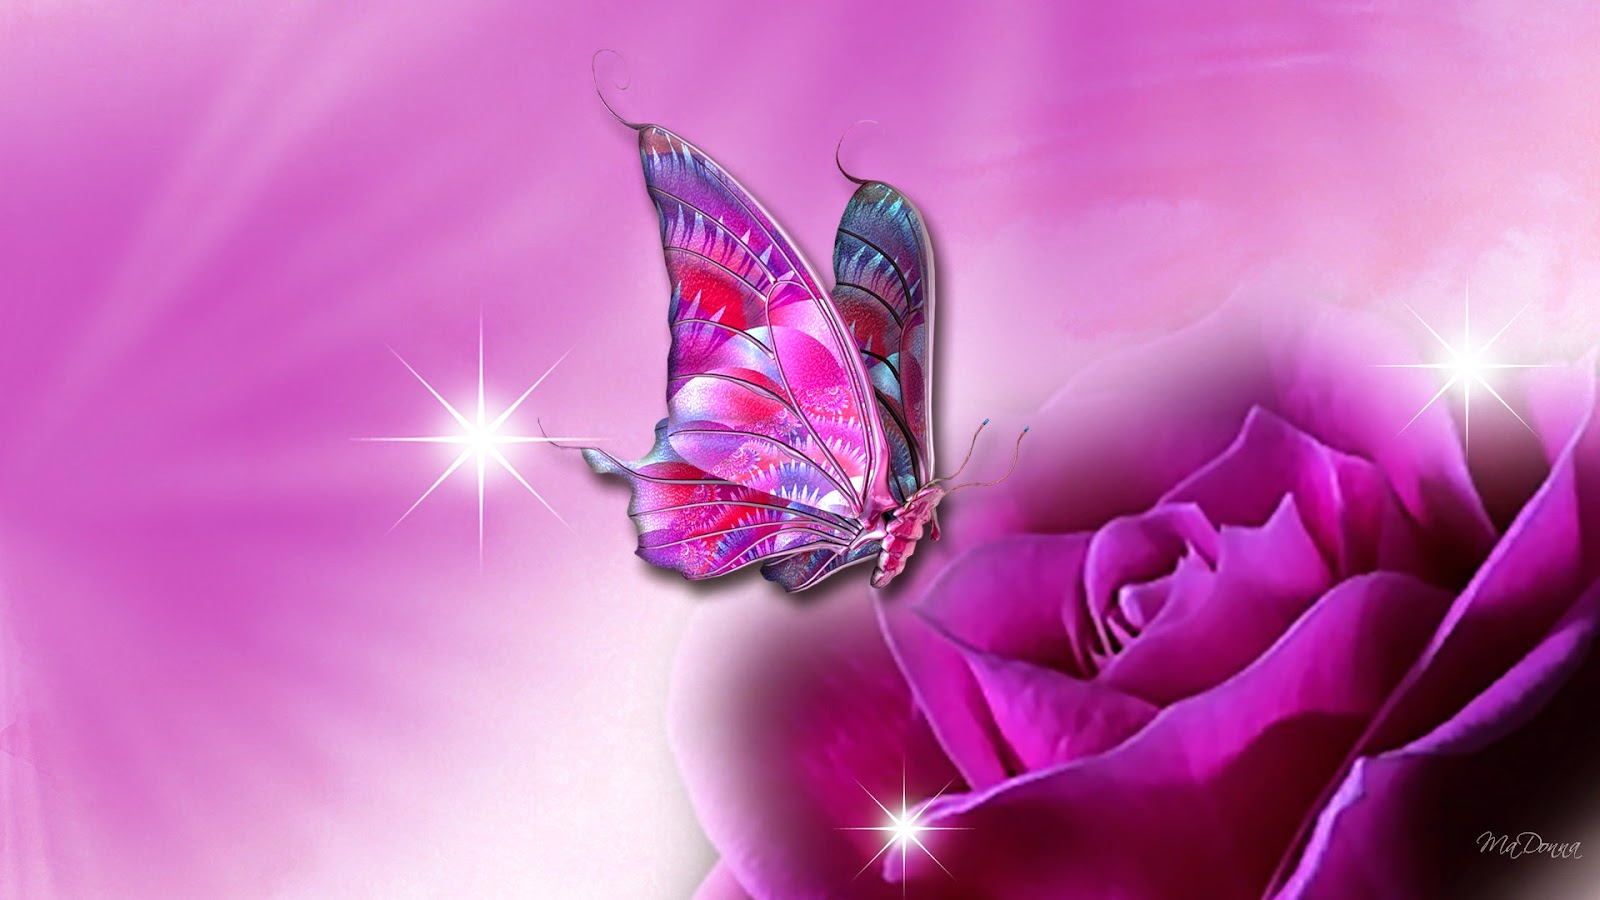 Hd Butterflies Pink Butterfly On Purple Flower Wallpaper